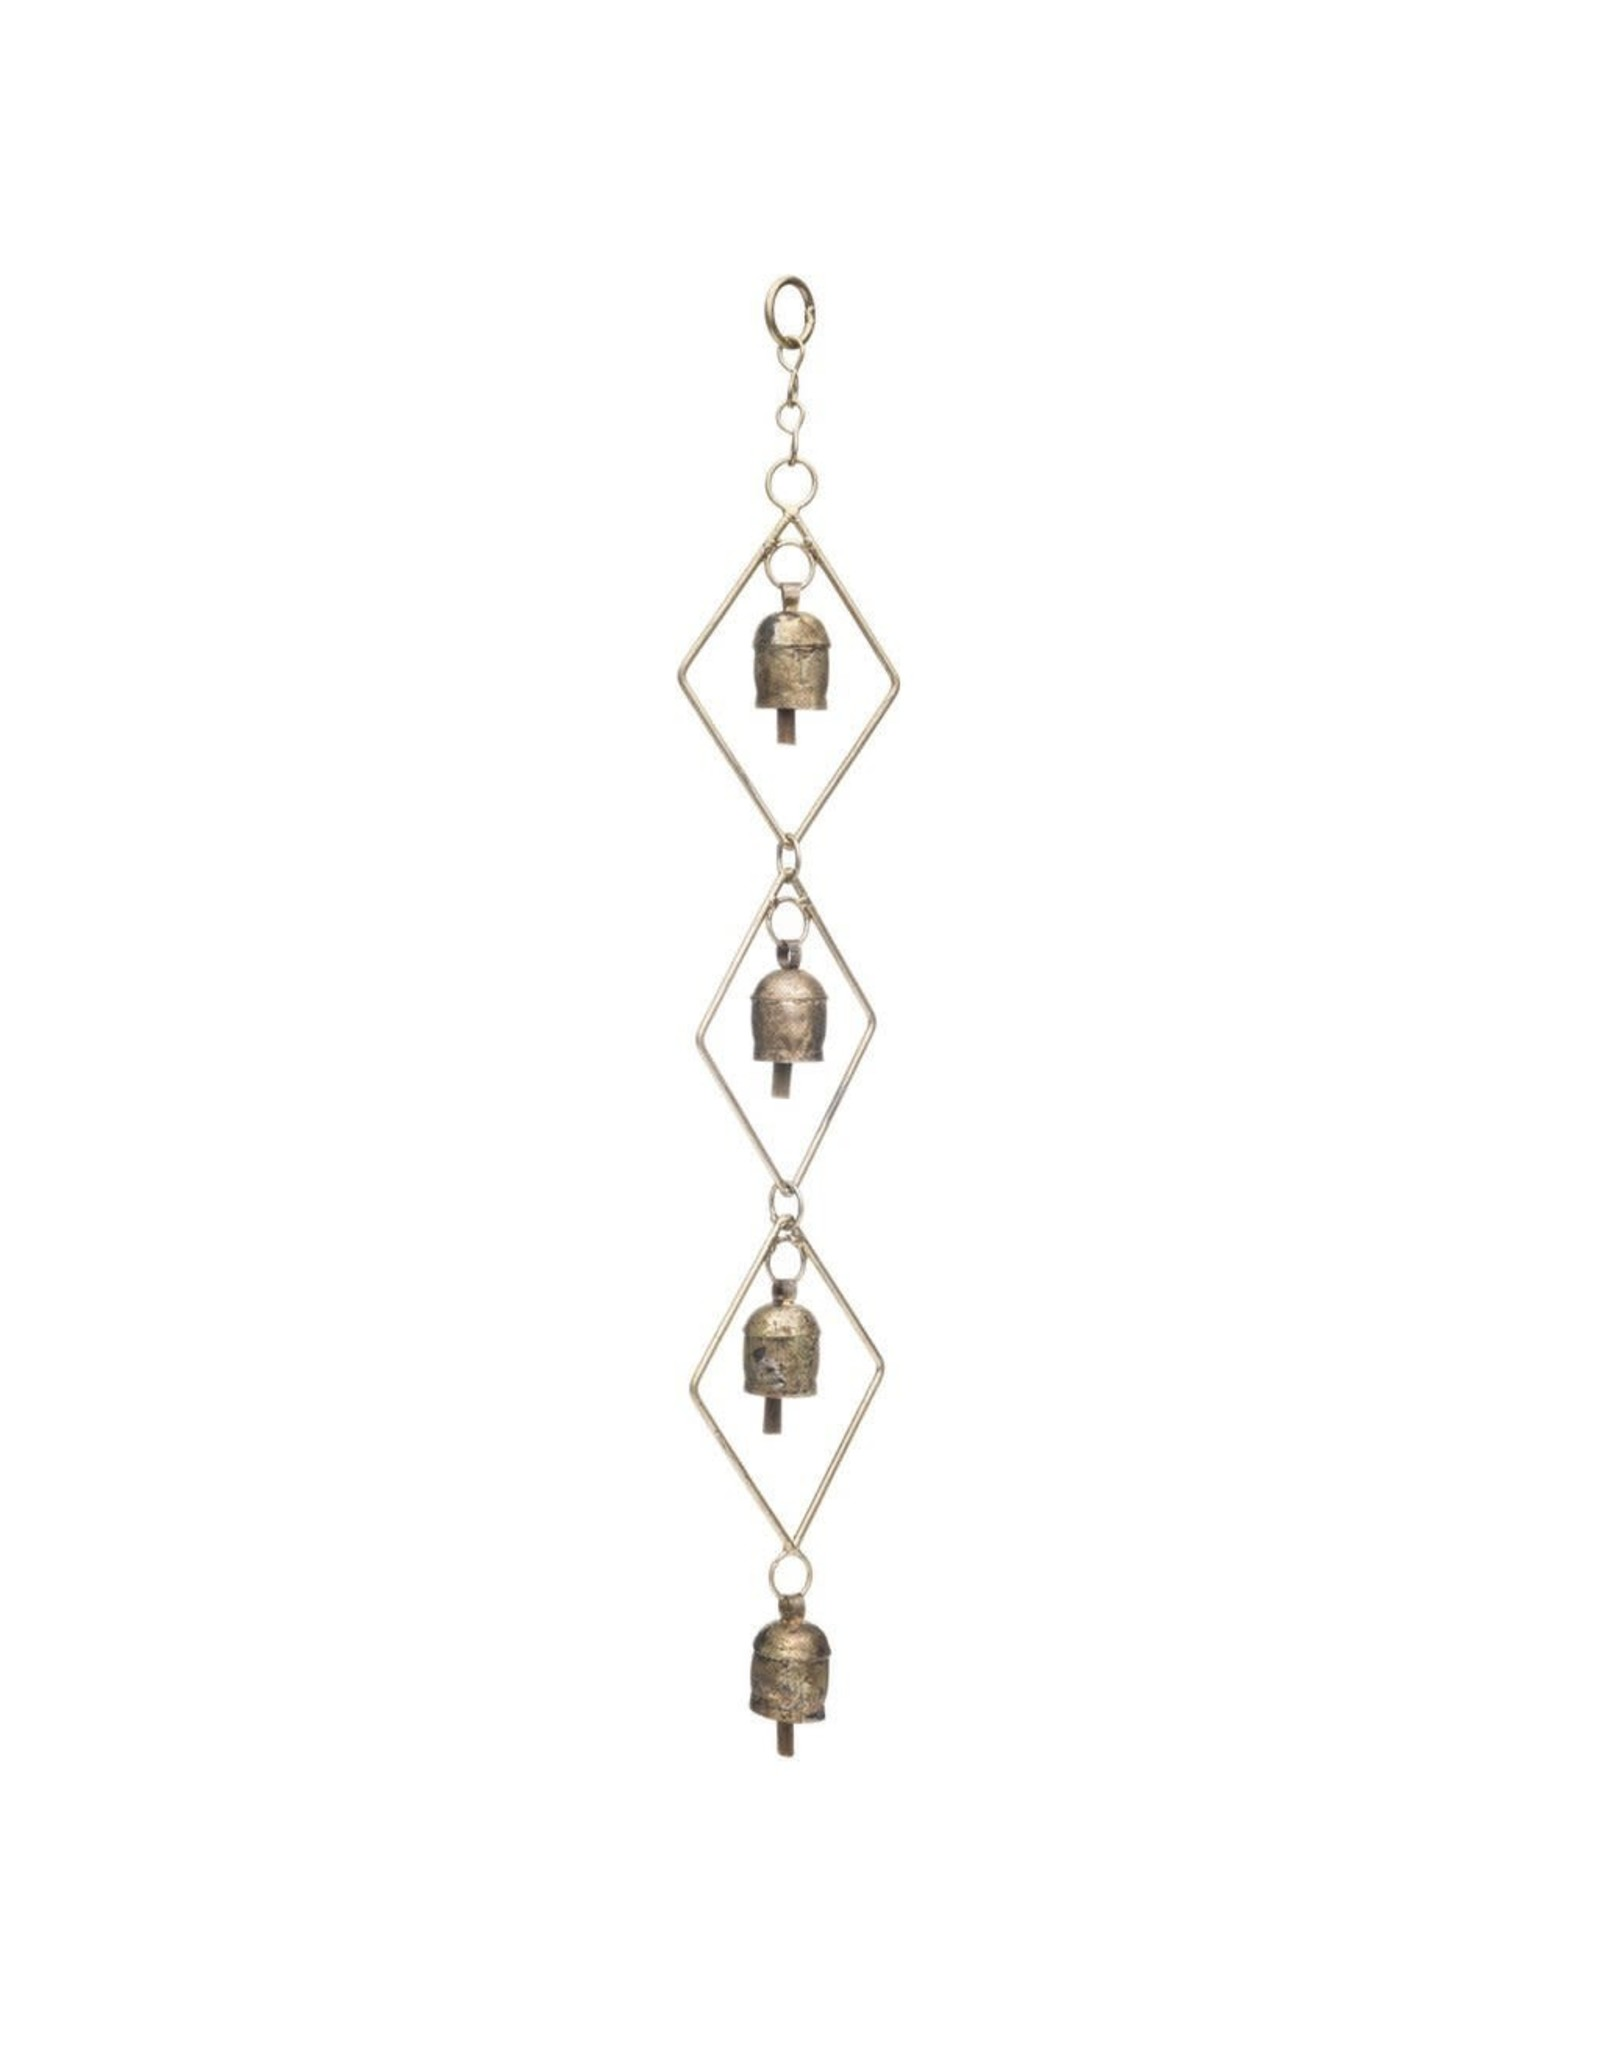 Delicate Bell Chime